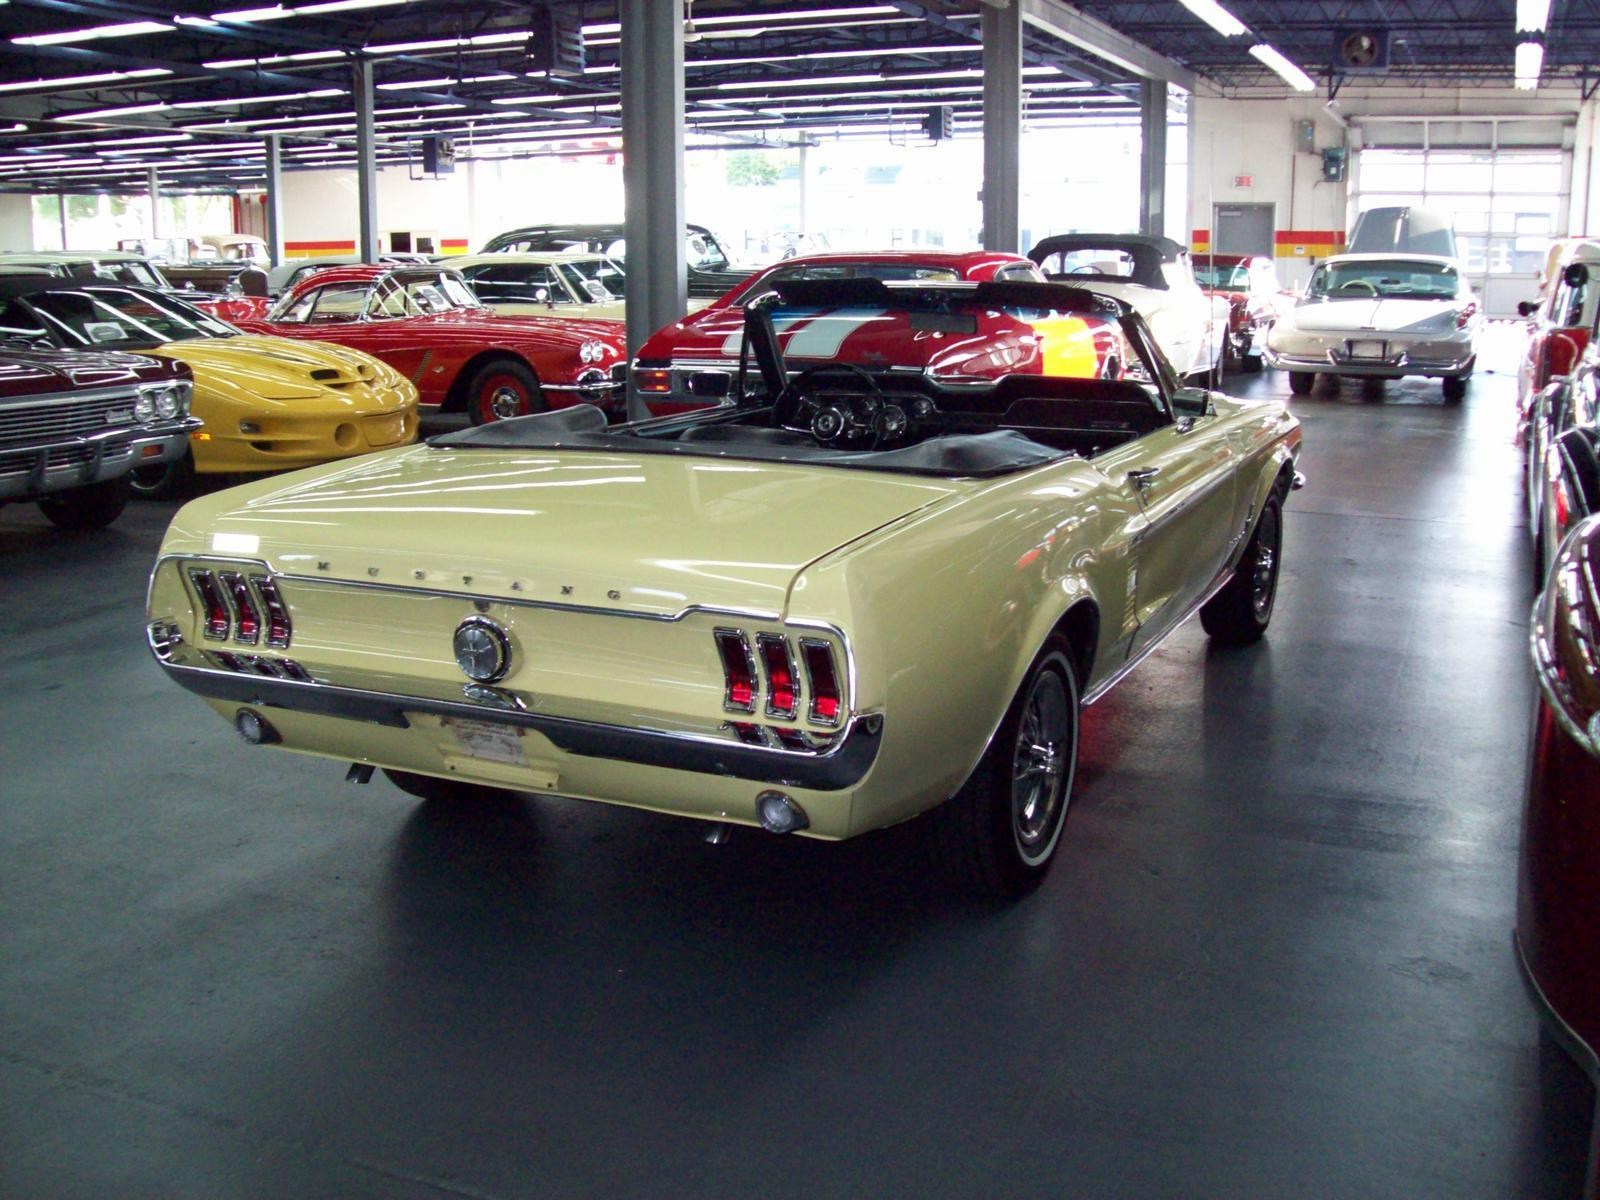 Used 1967 ford mustang for sale in saint léonard john scotti classic cars h1r 2y7 2070729